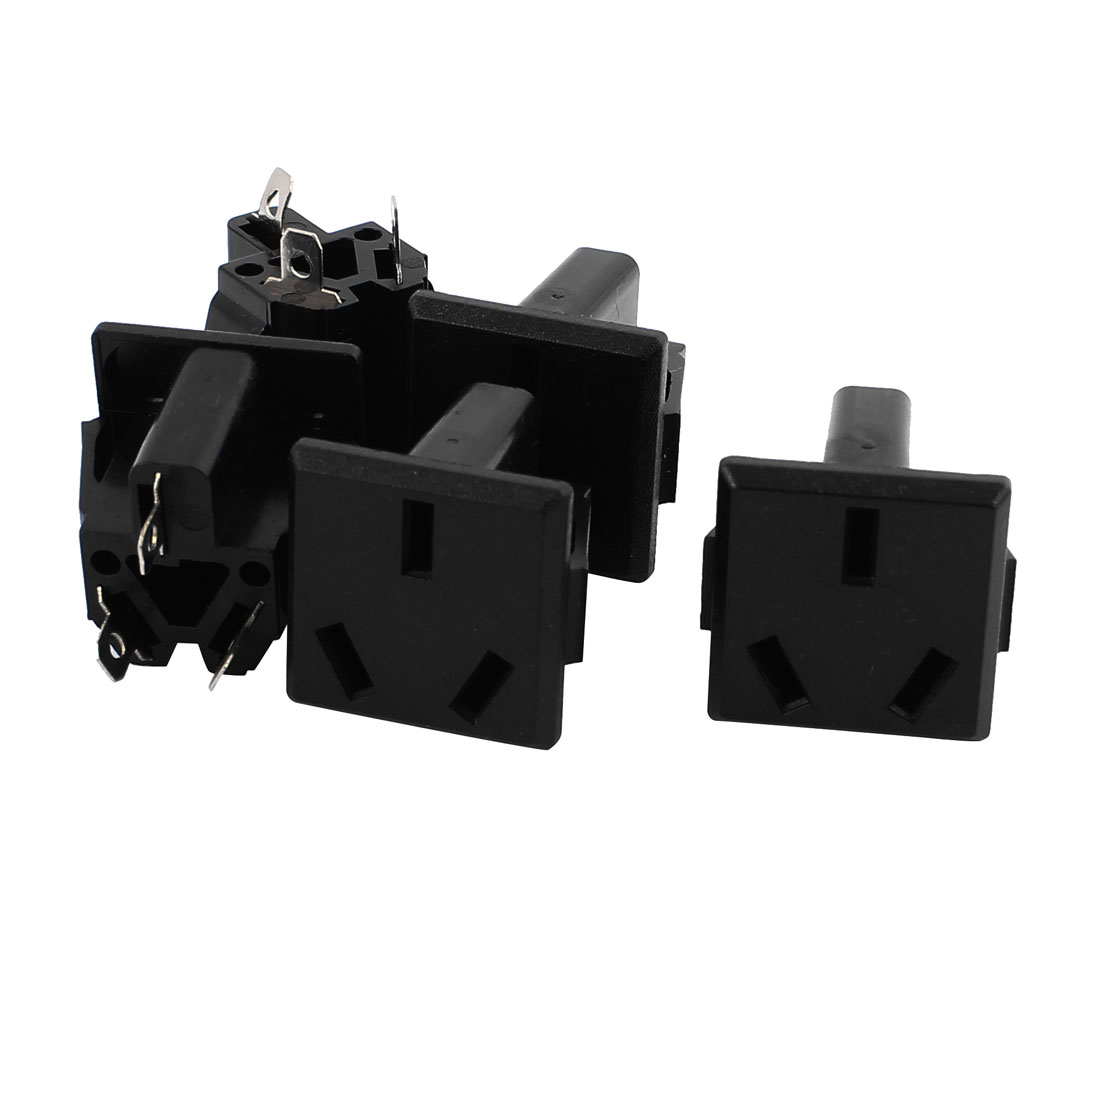 5Pcs AC 250V 10A AU Plug 3 Terminals Snap-in Power Socket Adapter Black